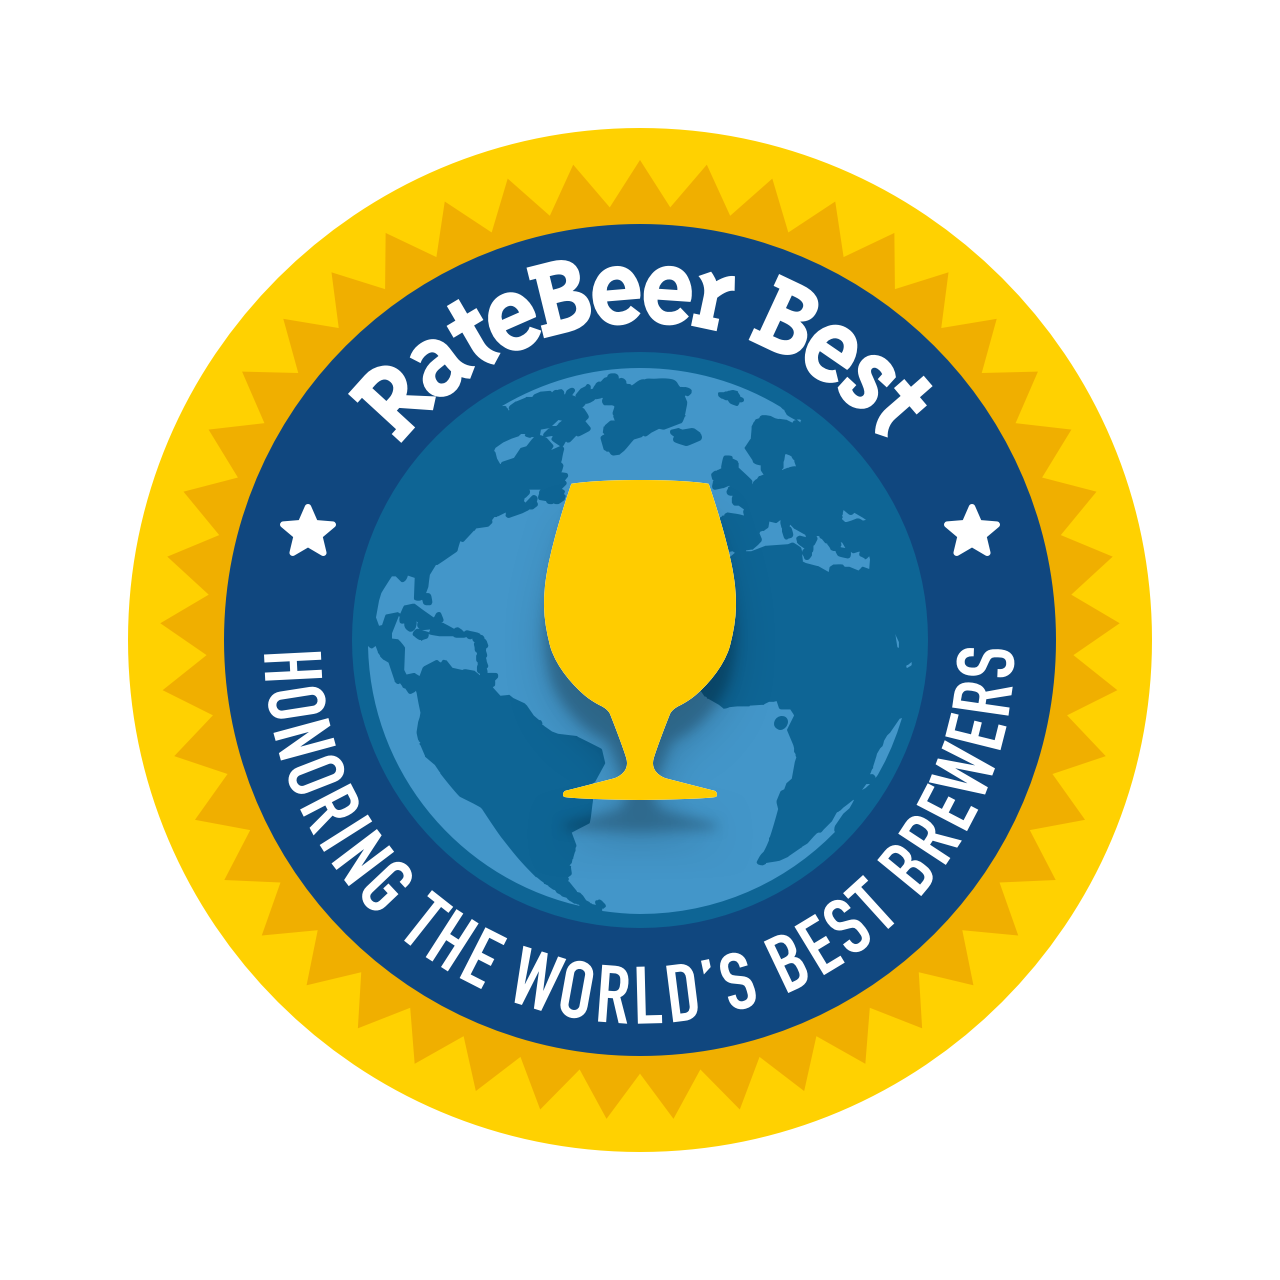 Aafbelding - RateBeer Best Awards 2018